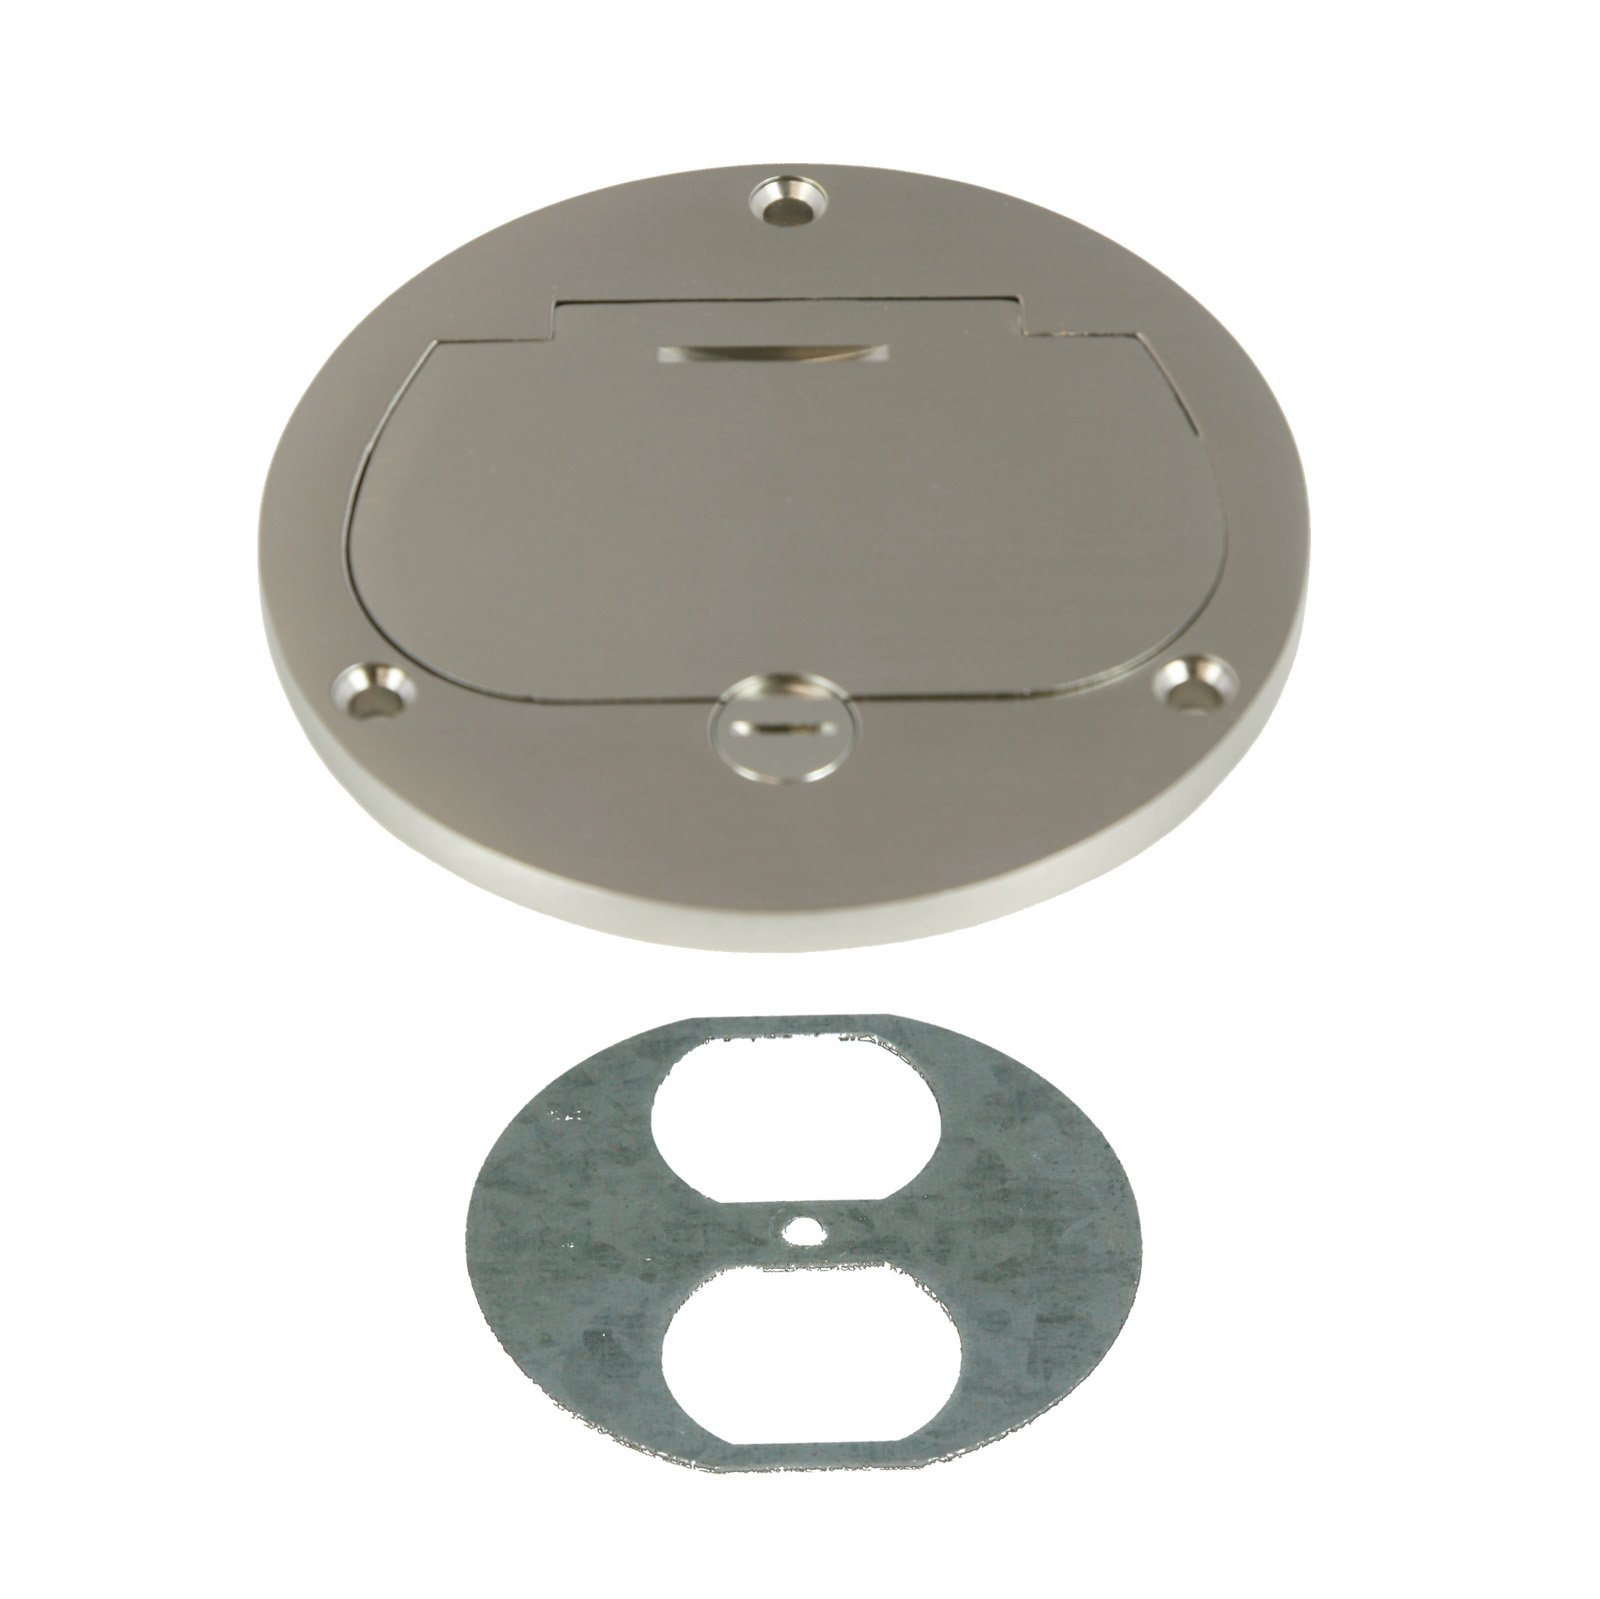 Cheap Floor Box Receptacle Find Deals On Line 15 Or 20 Amp Tamper Weather Resistant Gfci Receptacles Get Quotations Enerlites 975502 S 4 Hinged Cover Flange 20a Duplex